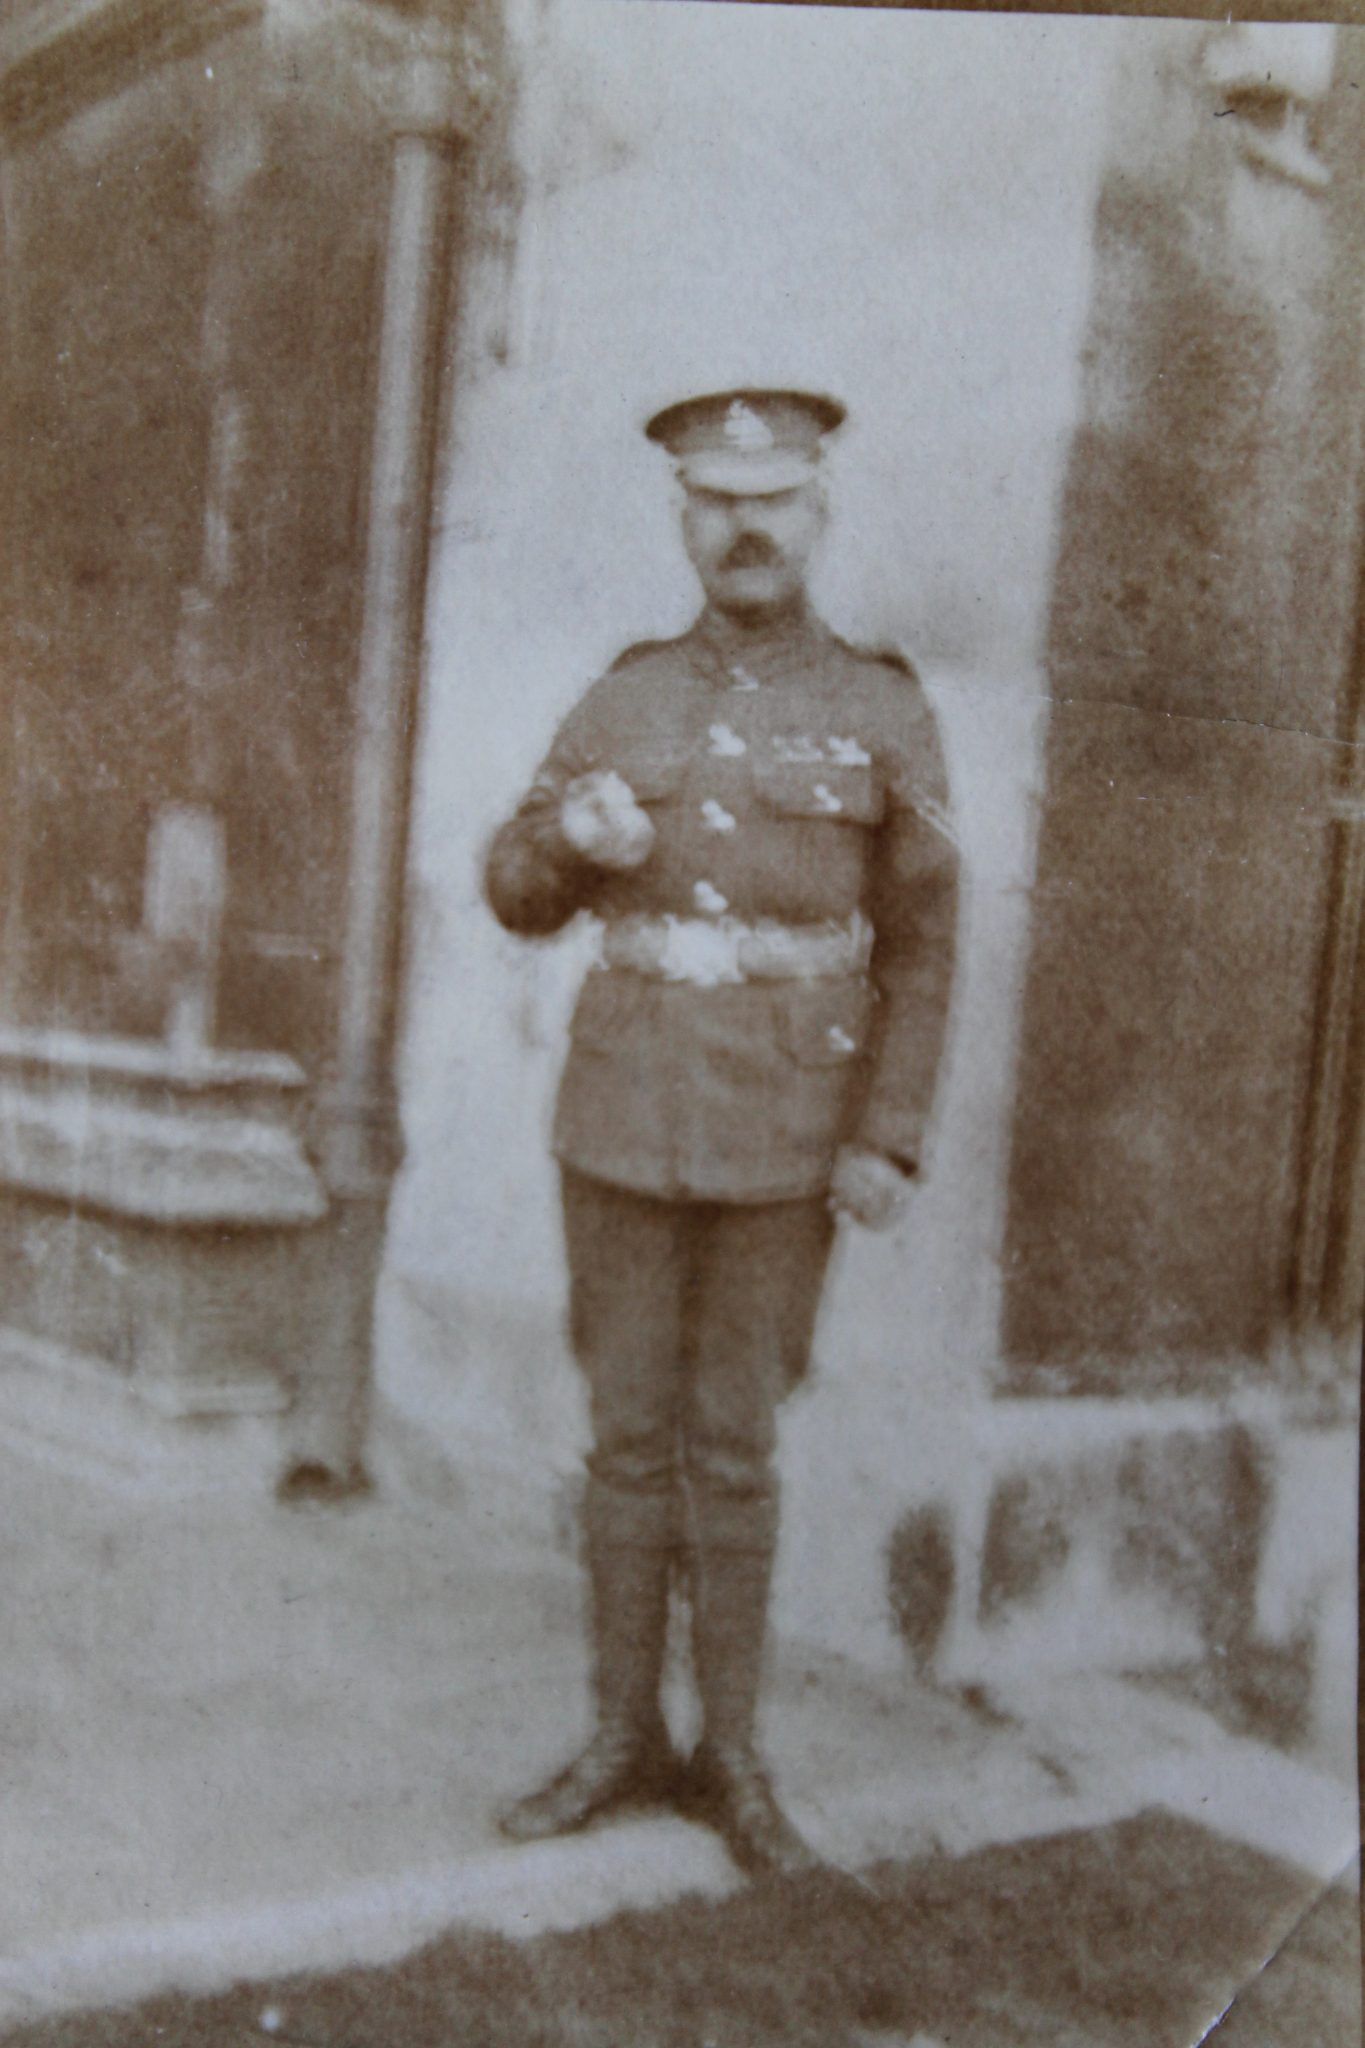 Fred Naylor in uniform